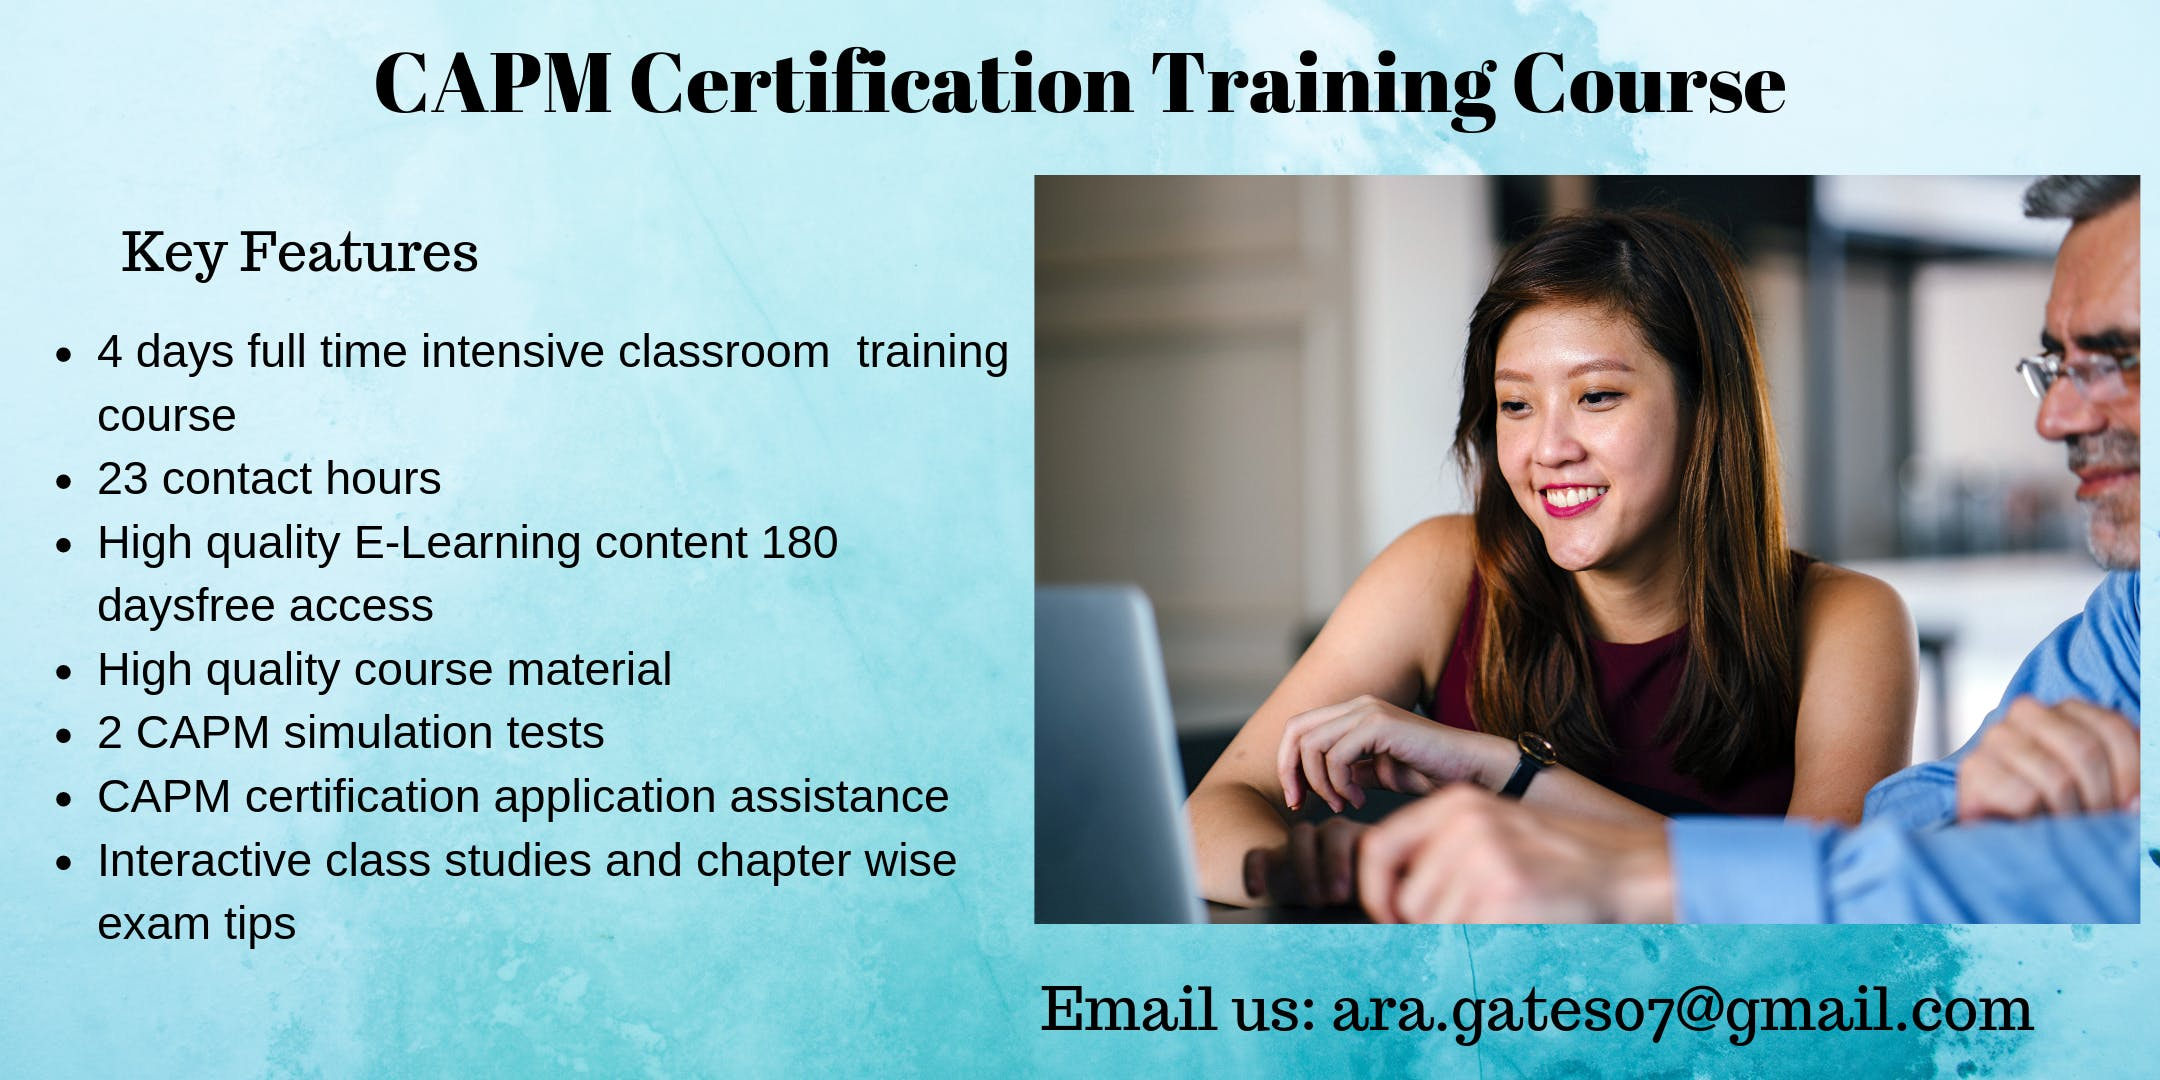 CAPM Certification Course in Halifax, NS